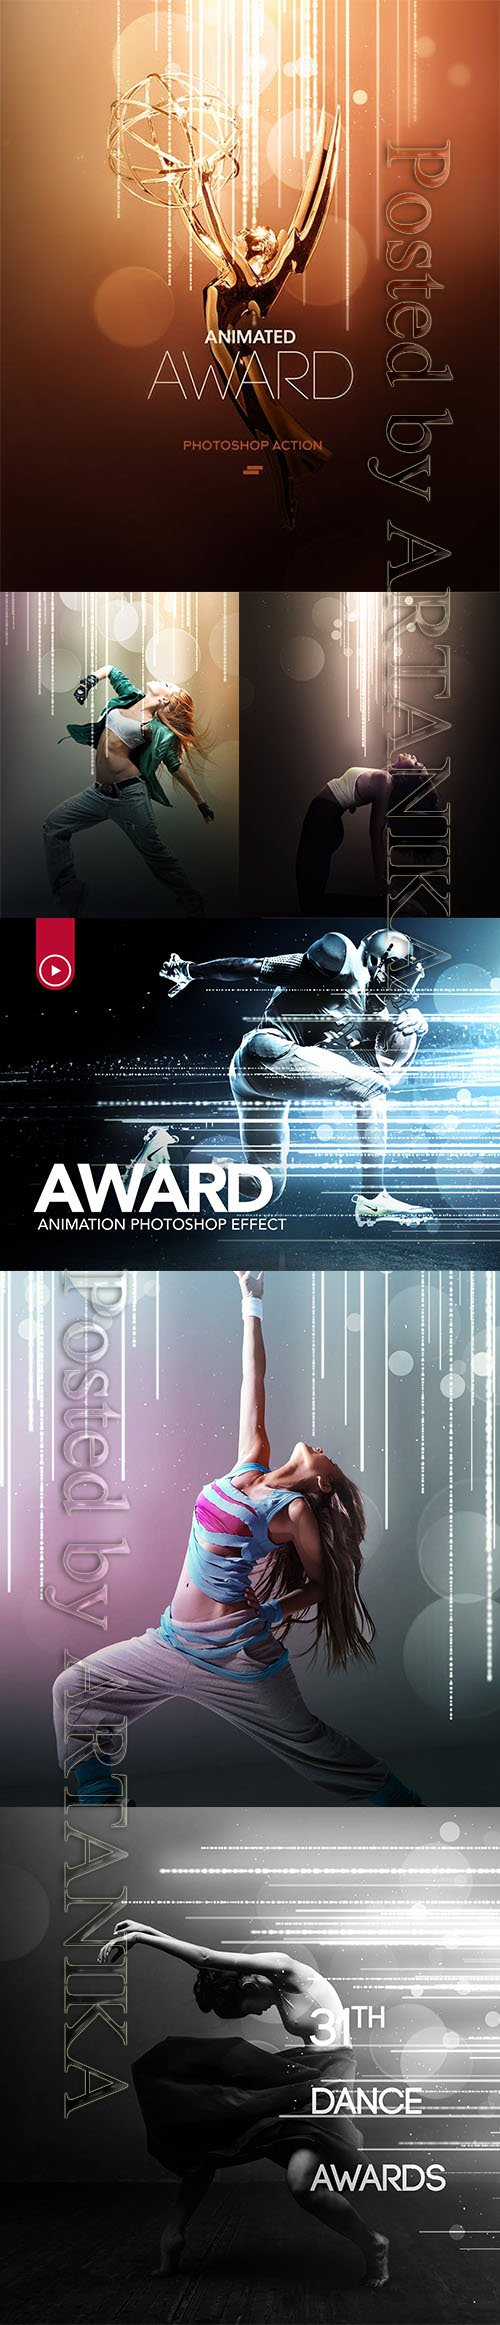 GraphicRiver - Gif Animated Award Effect Photoshop Action 19366534